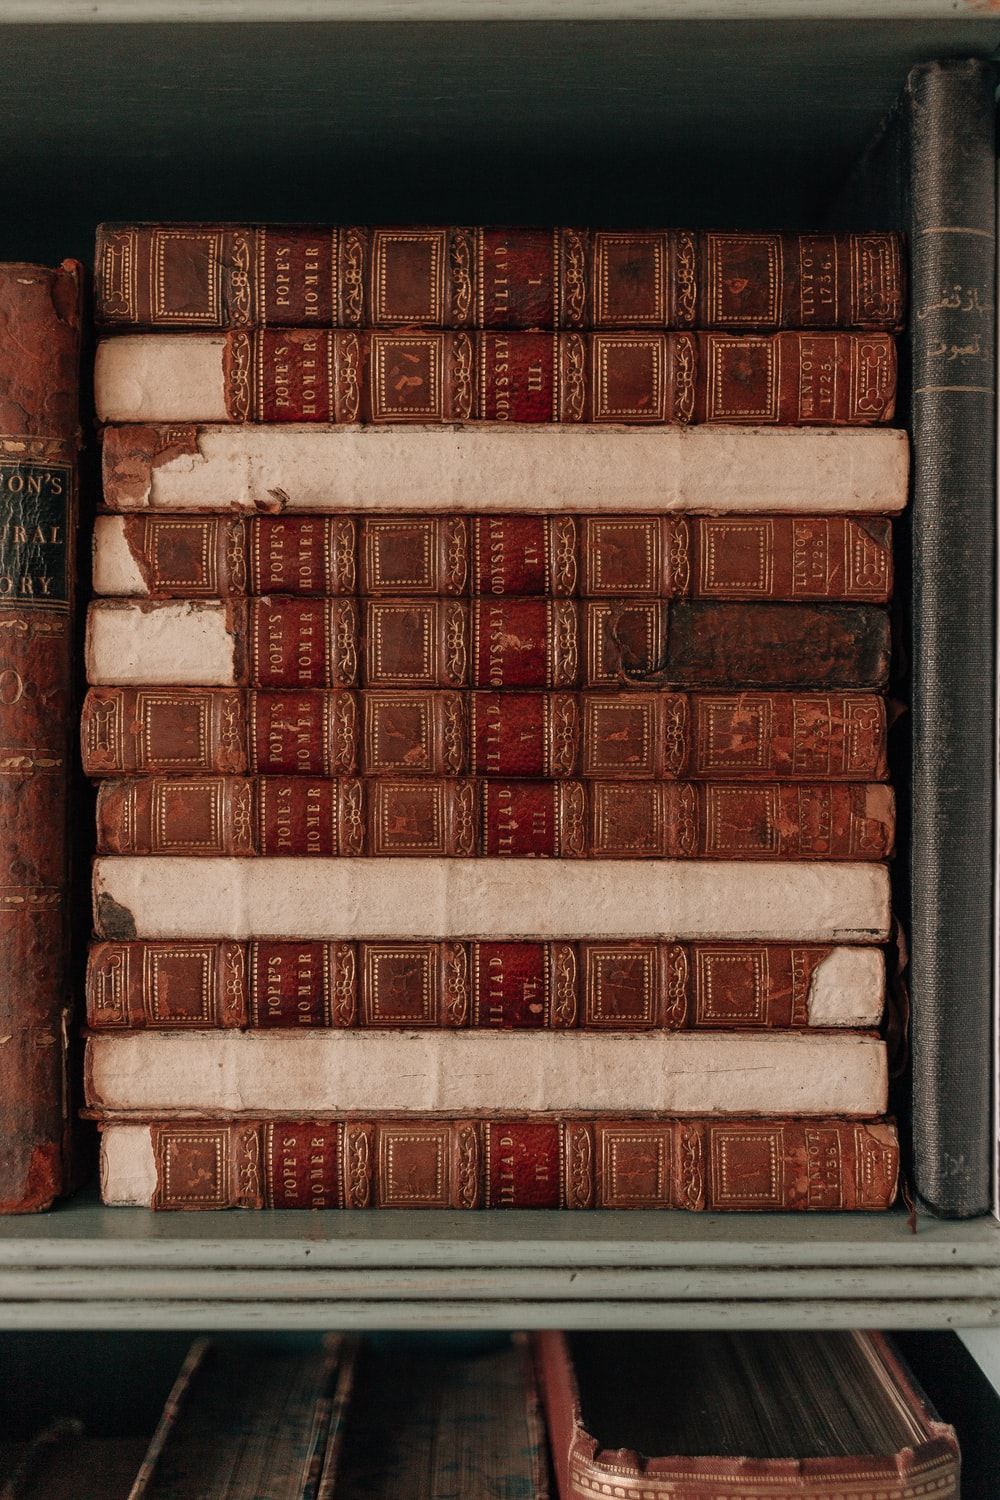 brown and white books on shelf